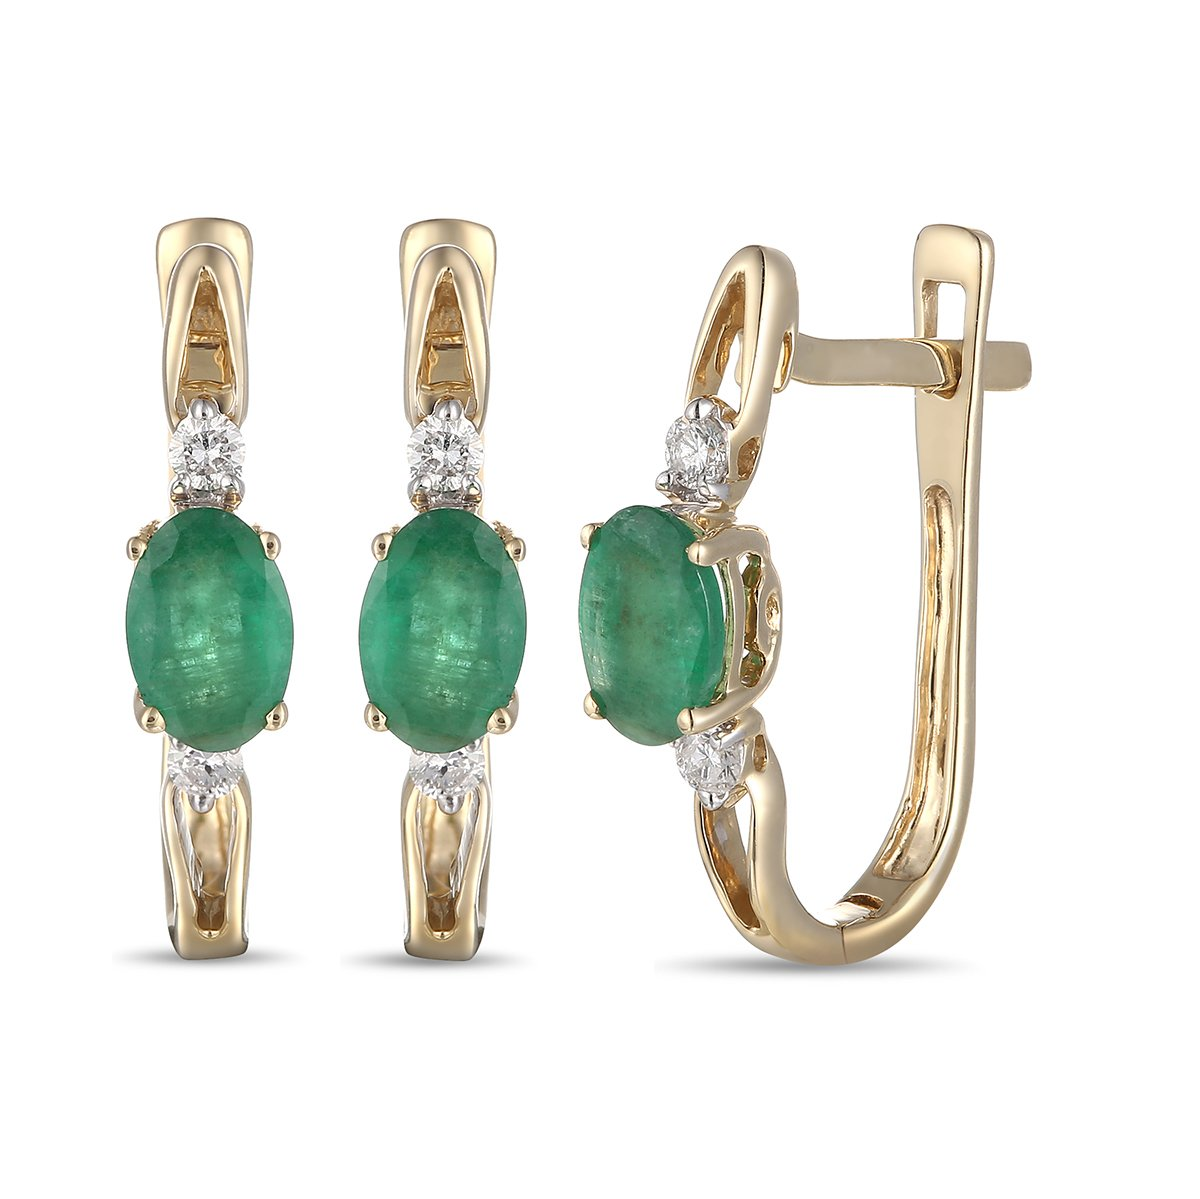 Mother's Day Gift, 14K Gold Emerald Earring with Diamond,Emerald Earrings, Diamond Earrings